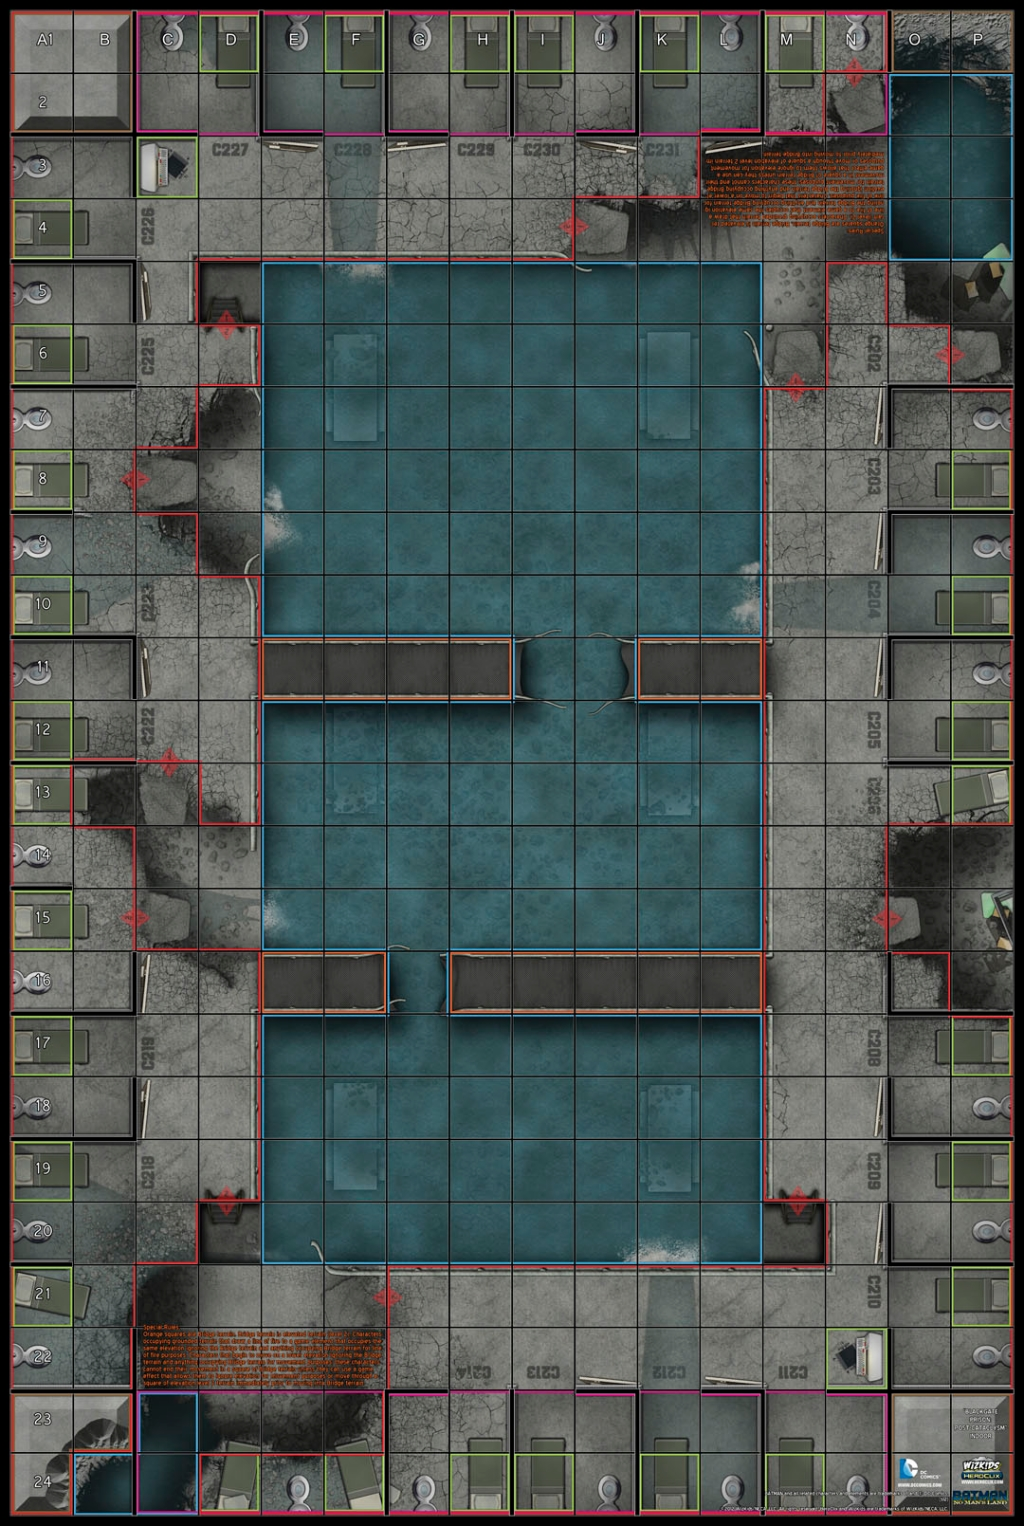 Heroclix BlackGate Prison Map